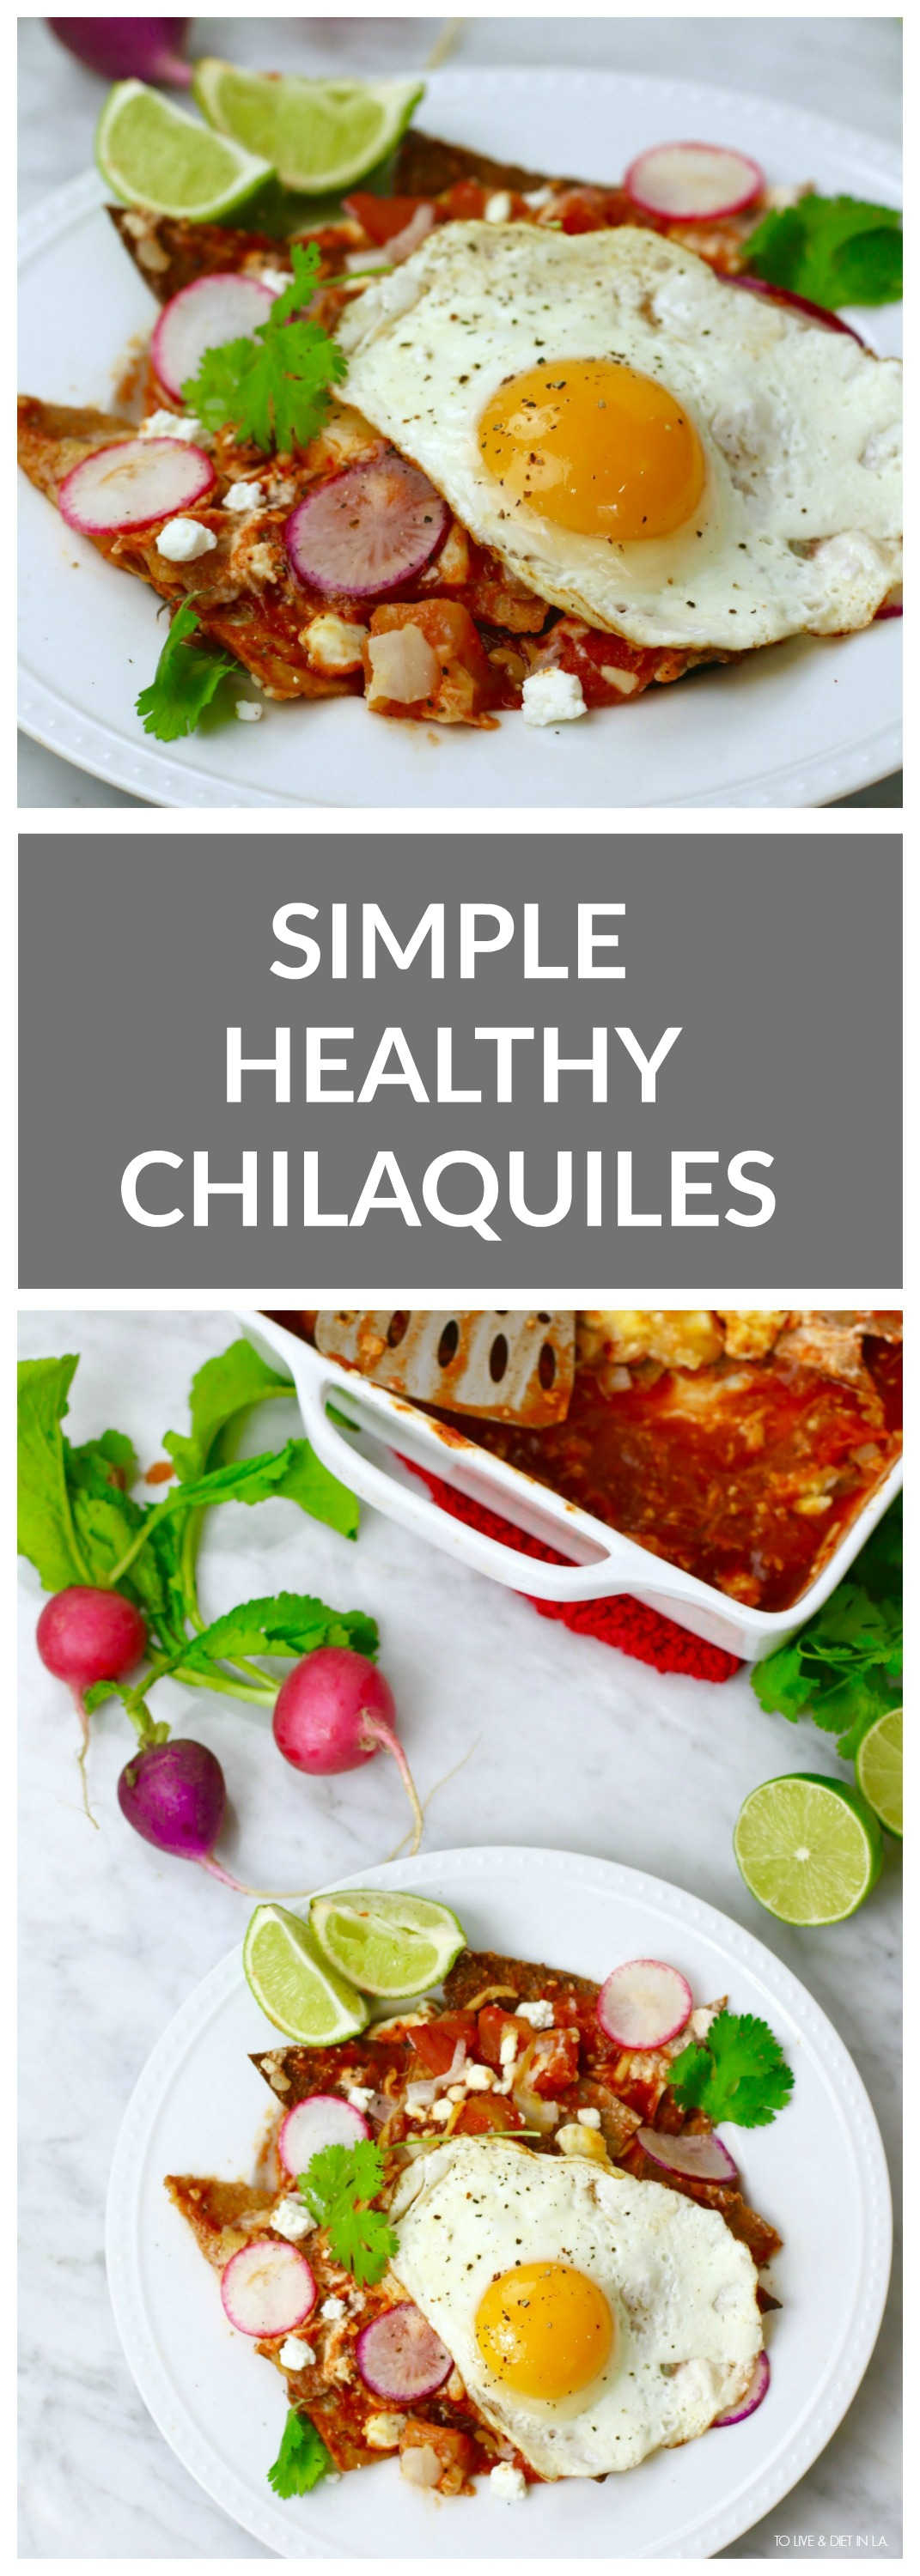 Simple Healthy Chilaquiles Recipe